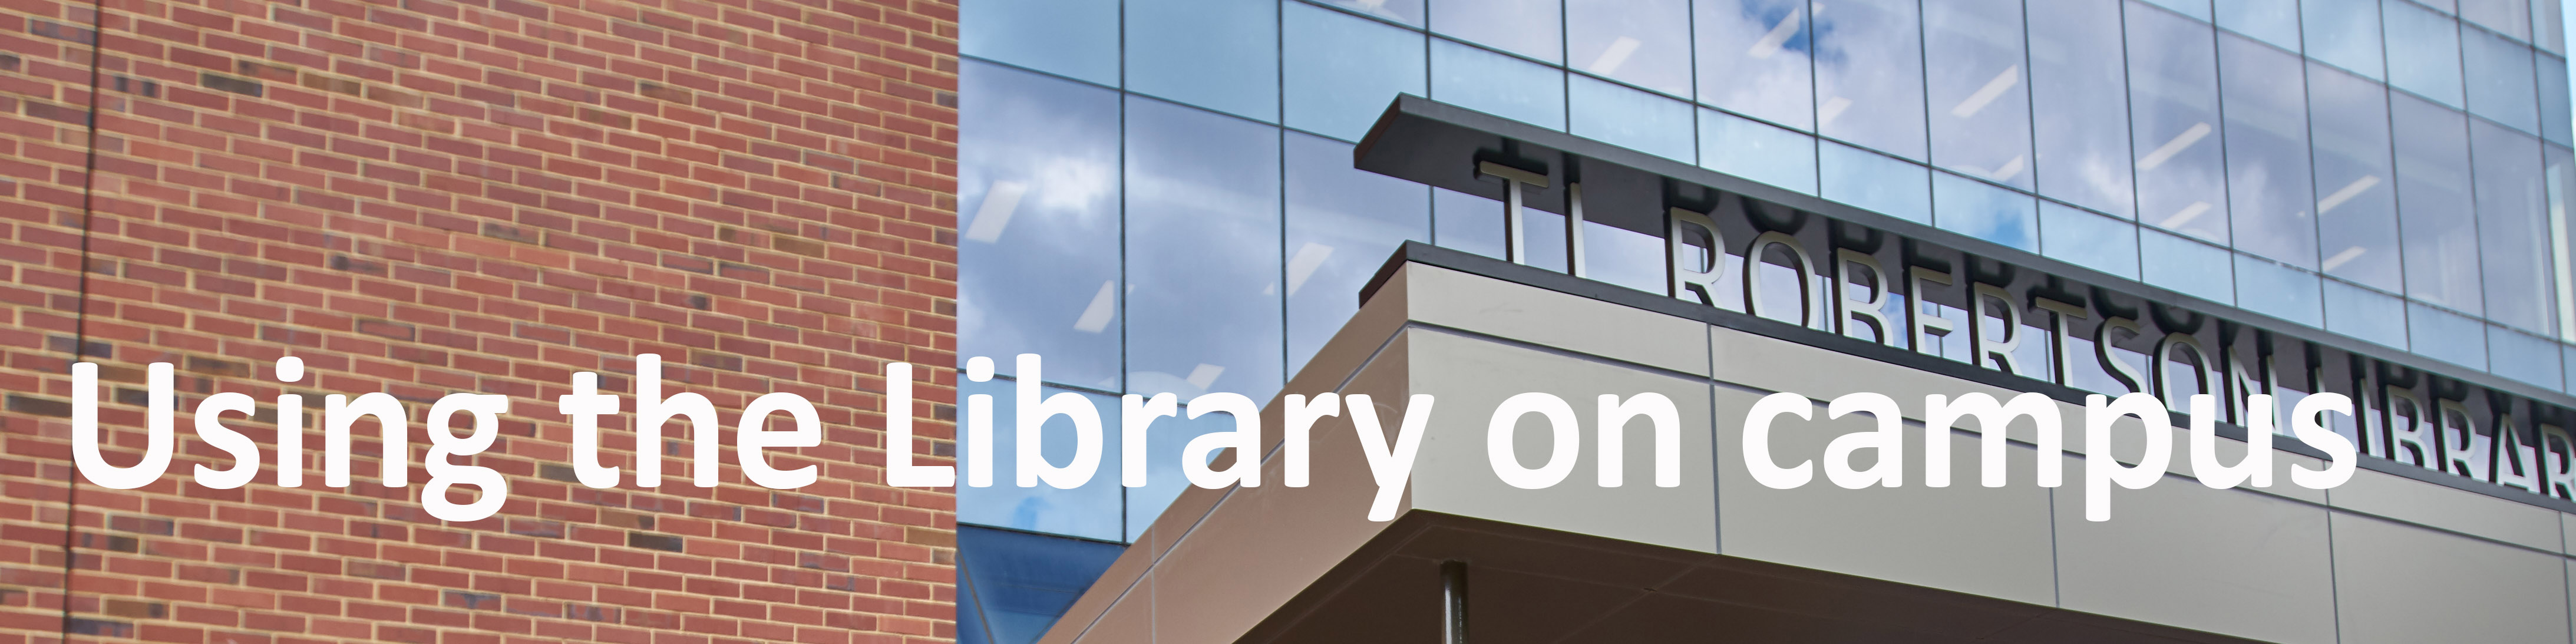 Find out about using the Library on campus